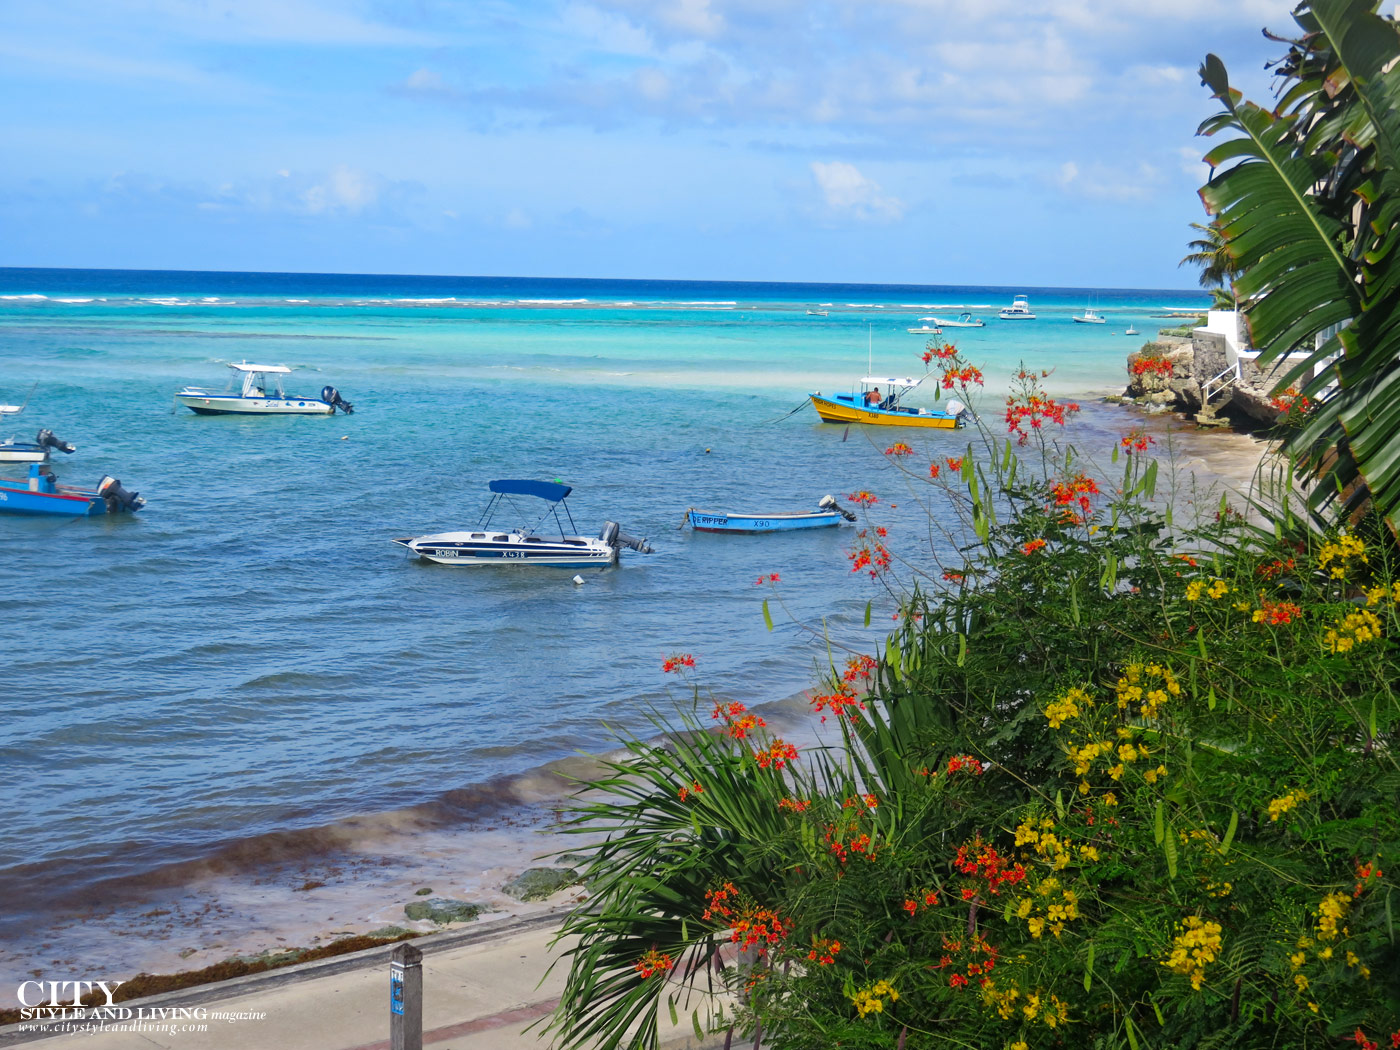 City Style and Living Magazine Winter 2019 Barbados Yellow Bird hotel Kailash Maharaj boats with flowers